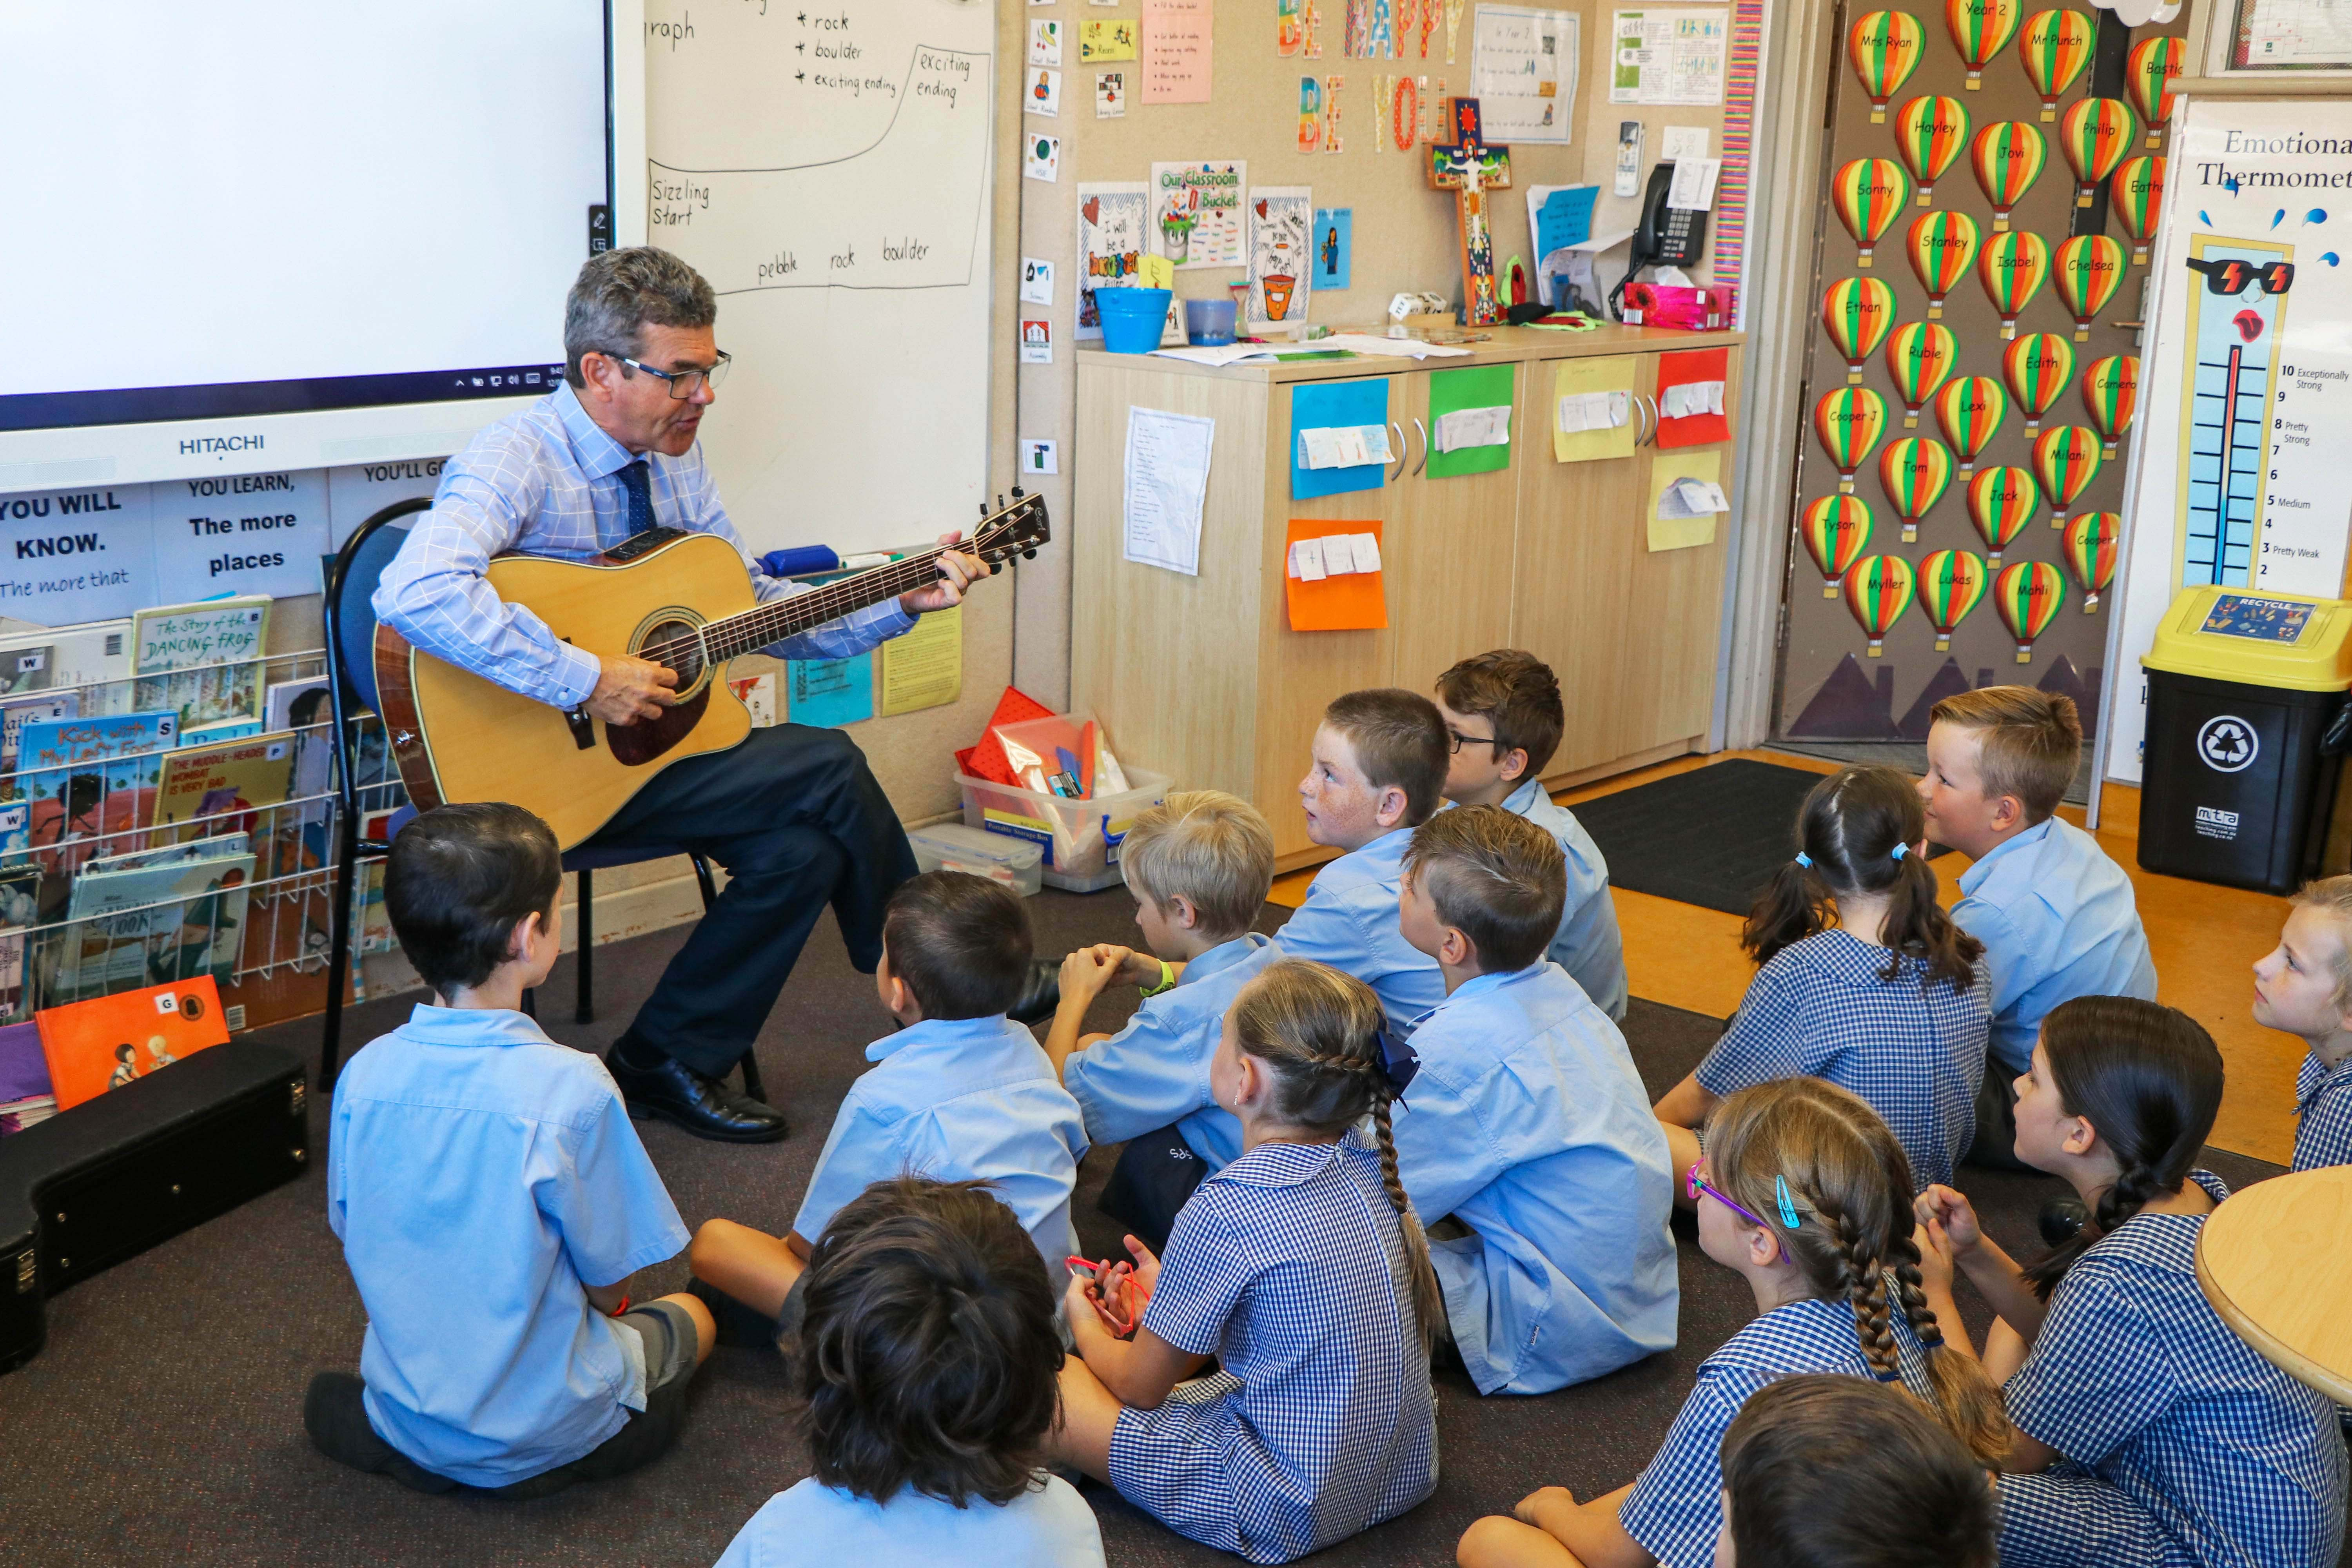 teacher playing guitar in front of students